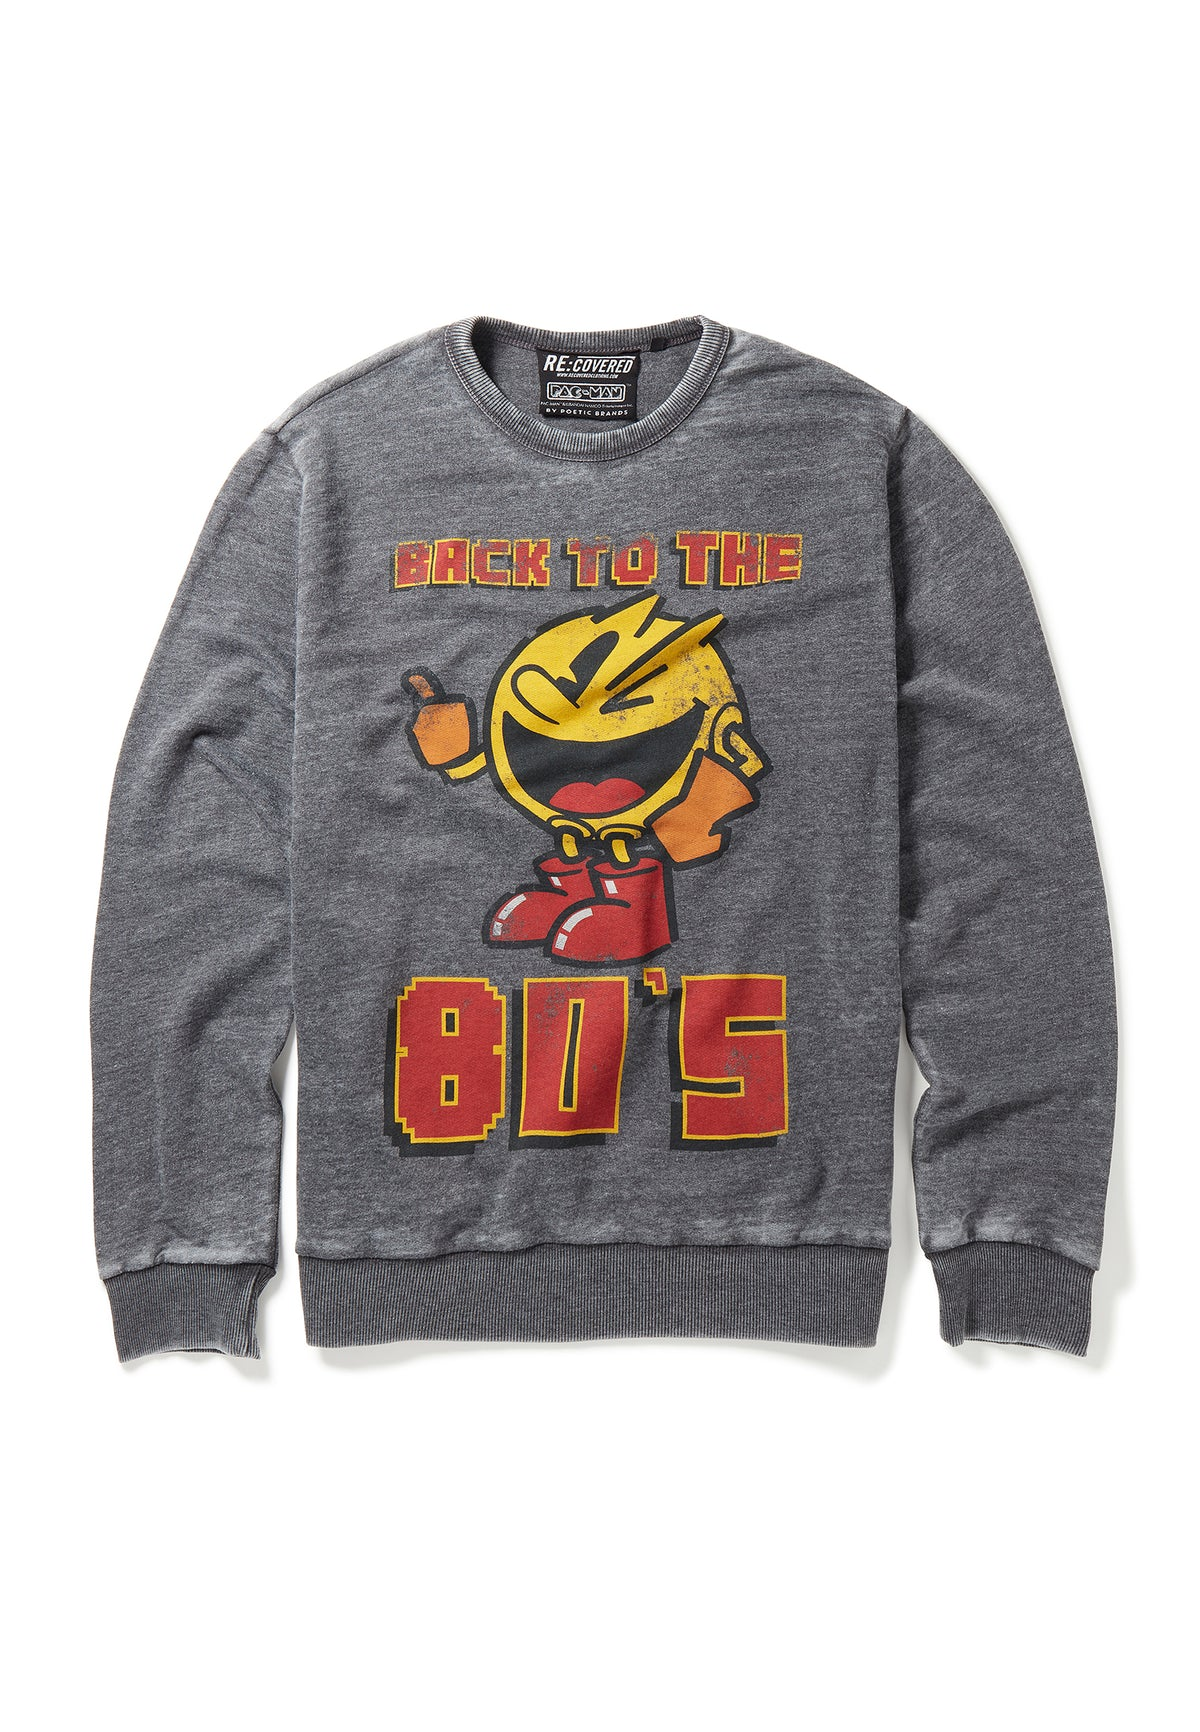 Recovered Pacman Retro Back To The 80's Charcoal Sweatshirt